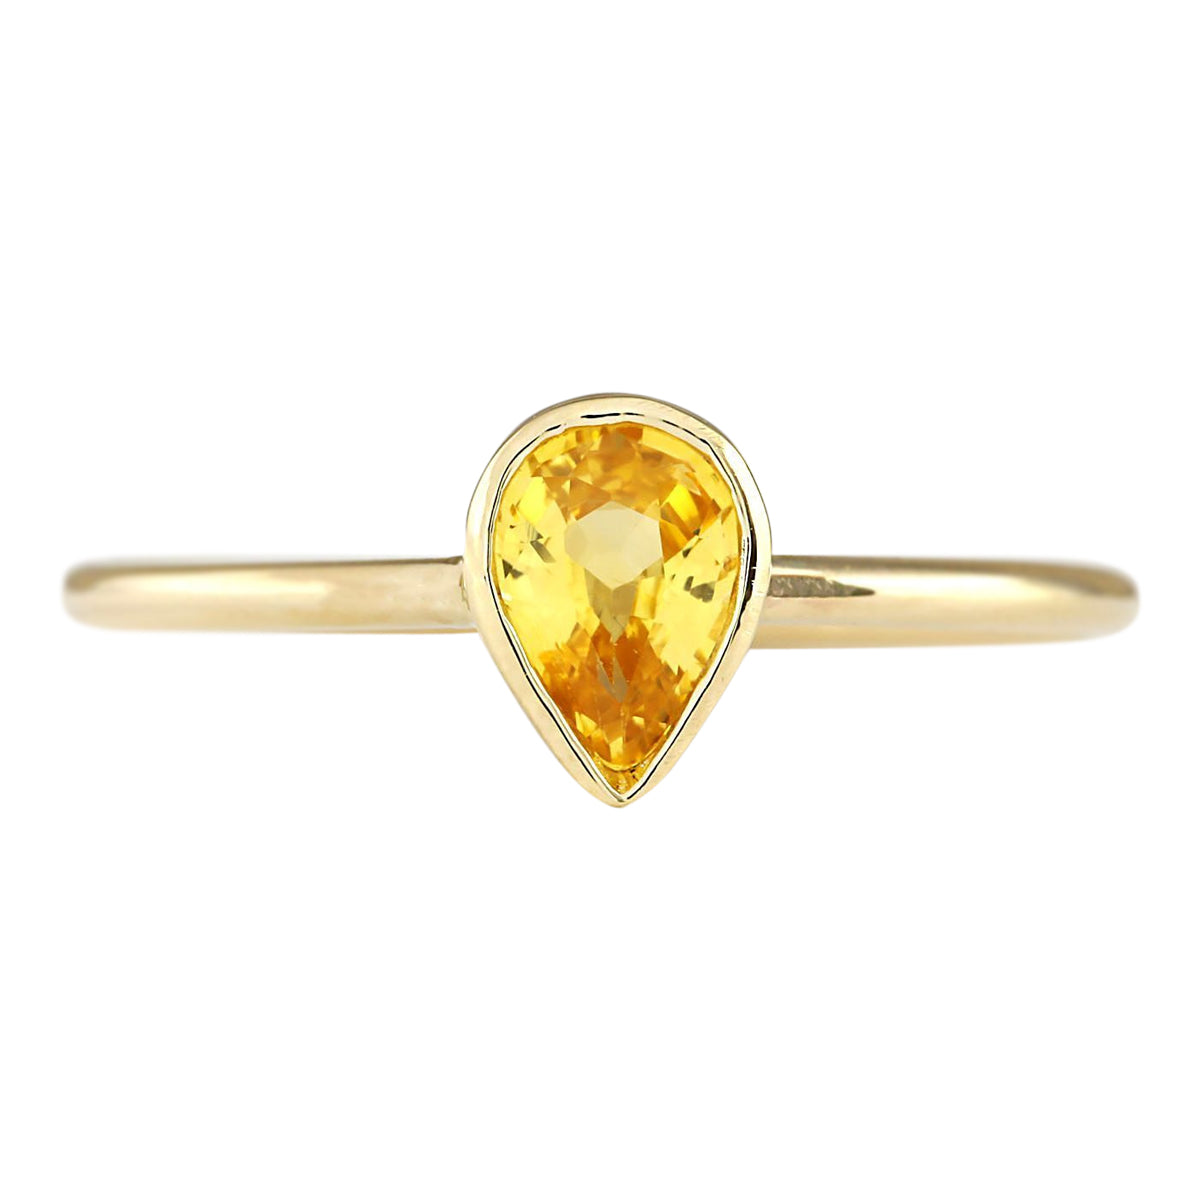 0.52 Carat Natural Sapphire 14K Yellow Gold Ring